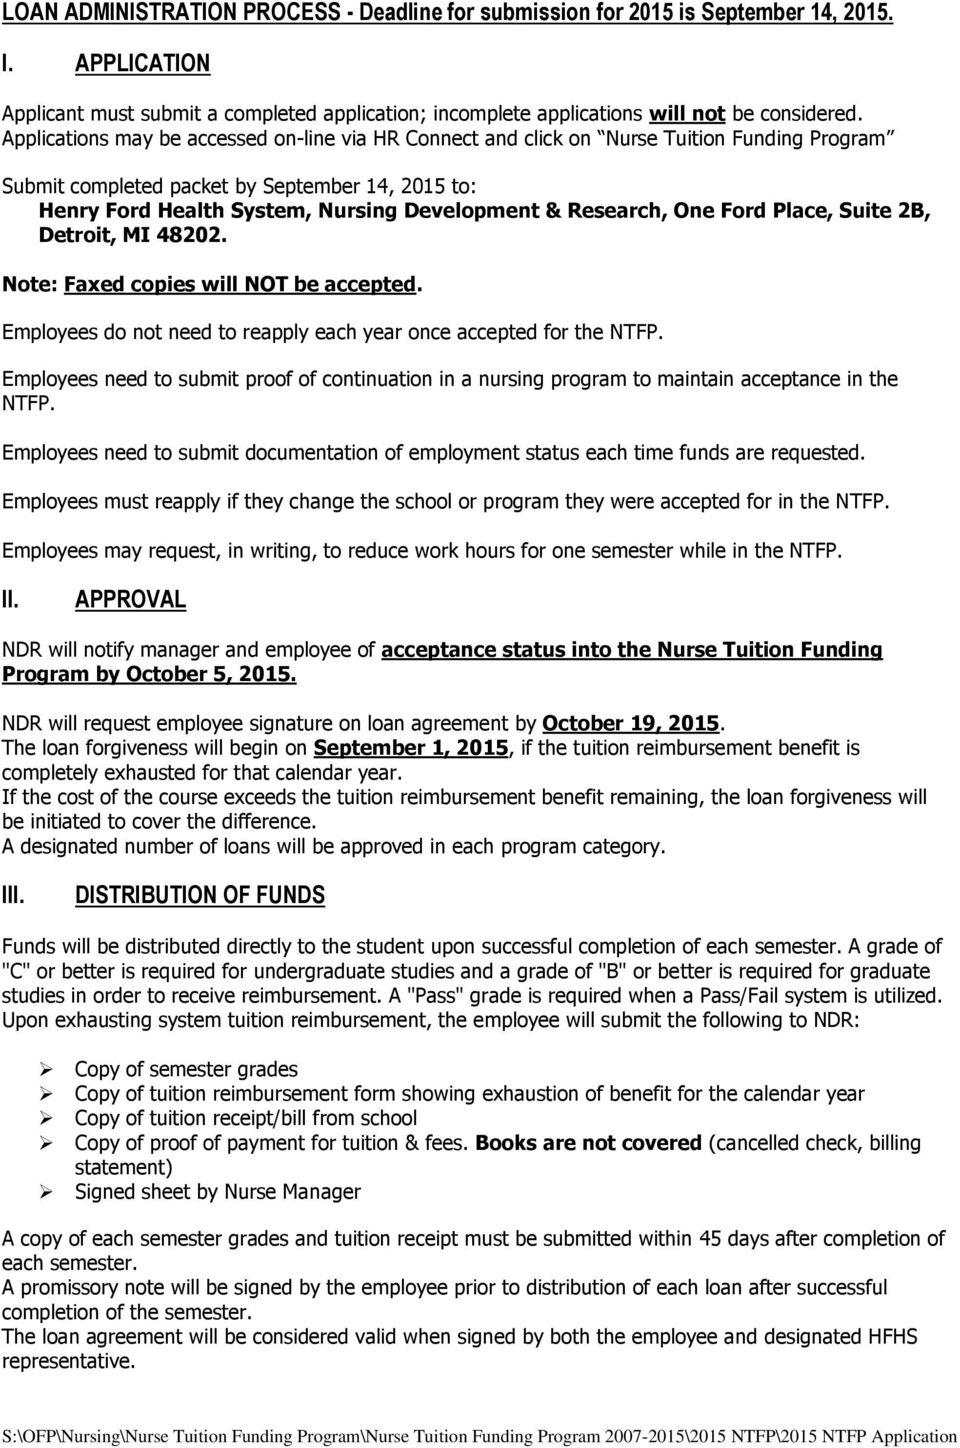 Research, One Ford Place, Suite 2B, Detroit, MI 48202. Note: Faxed copies will NOT be accepted. Employees do not need to reapply each year once accepted for the NTFP.